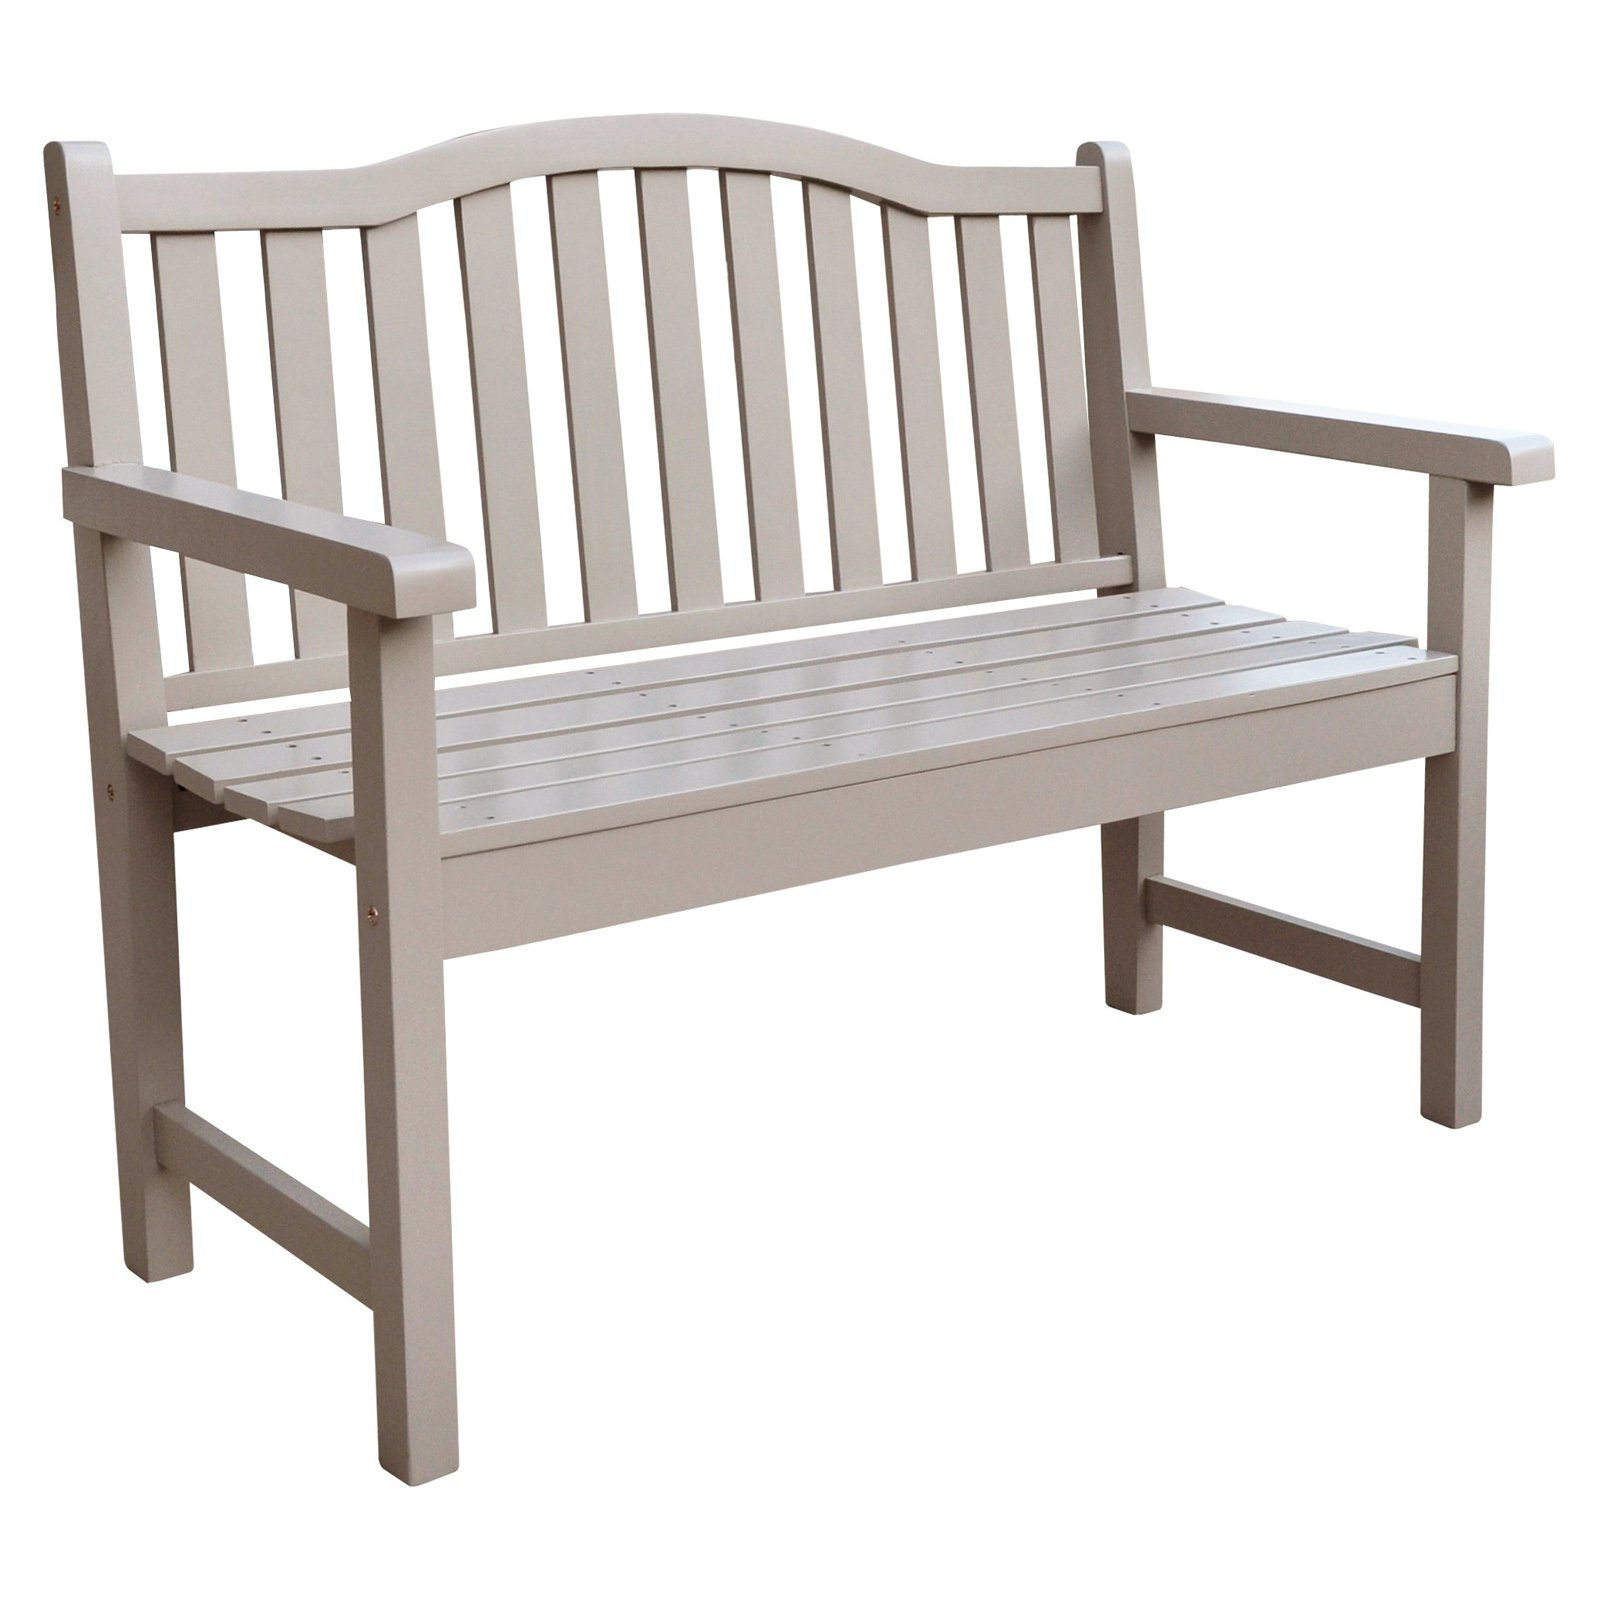 Wondrous Outdoor Benches Walmart Com Andrewgaddart Wooden Chair Designs For Living Room Andrewgaddartcom